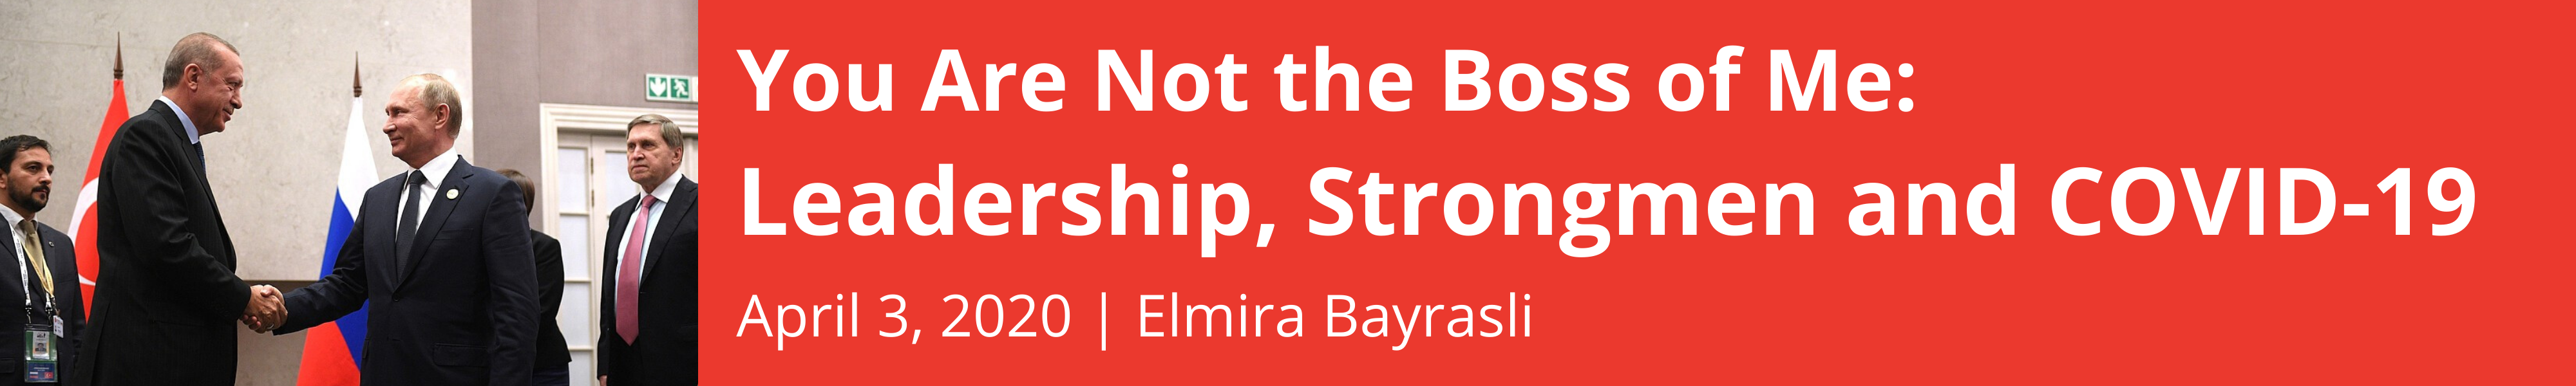 You Are Not the Boss of Me: Leadership, Strongmen and COVID-19